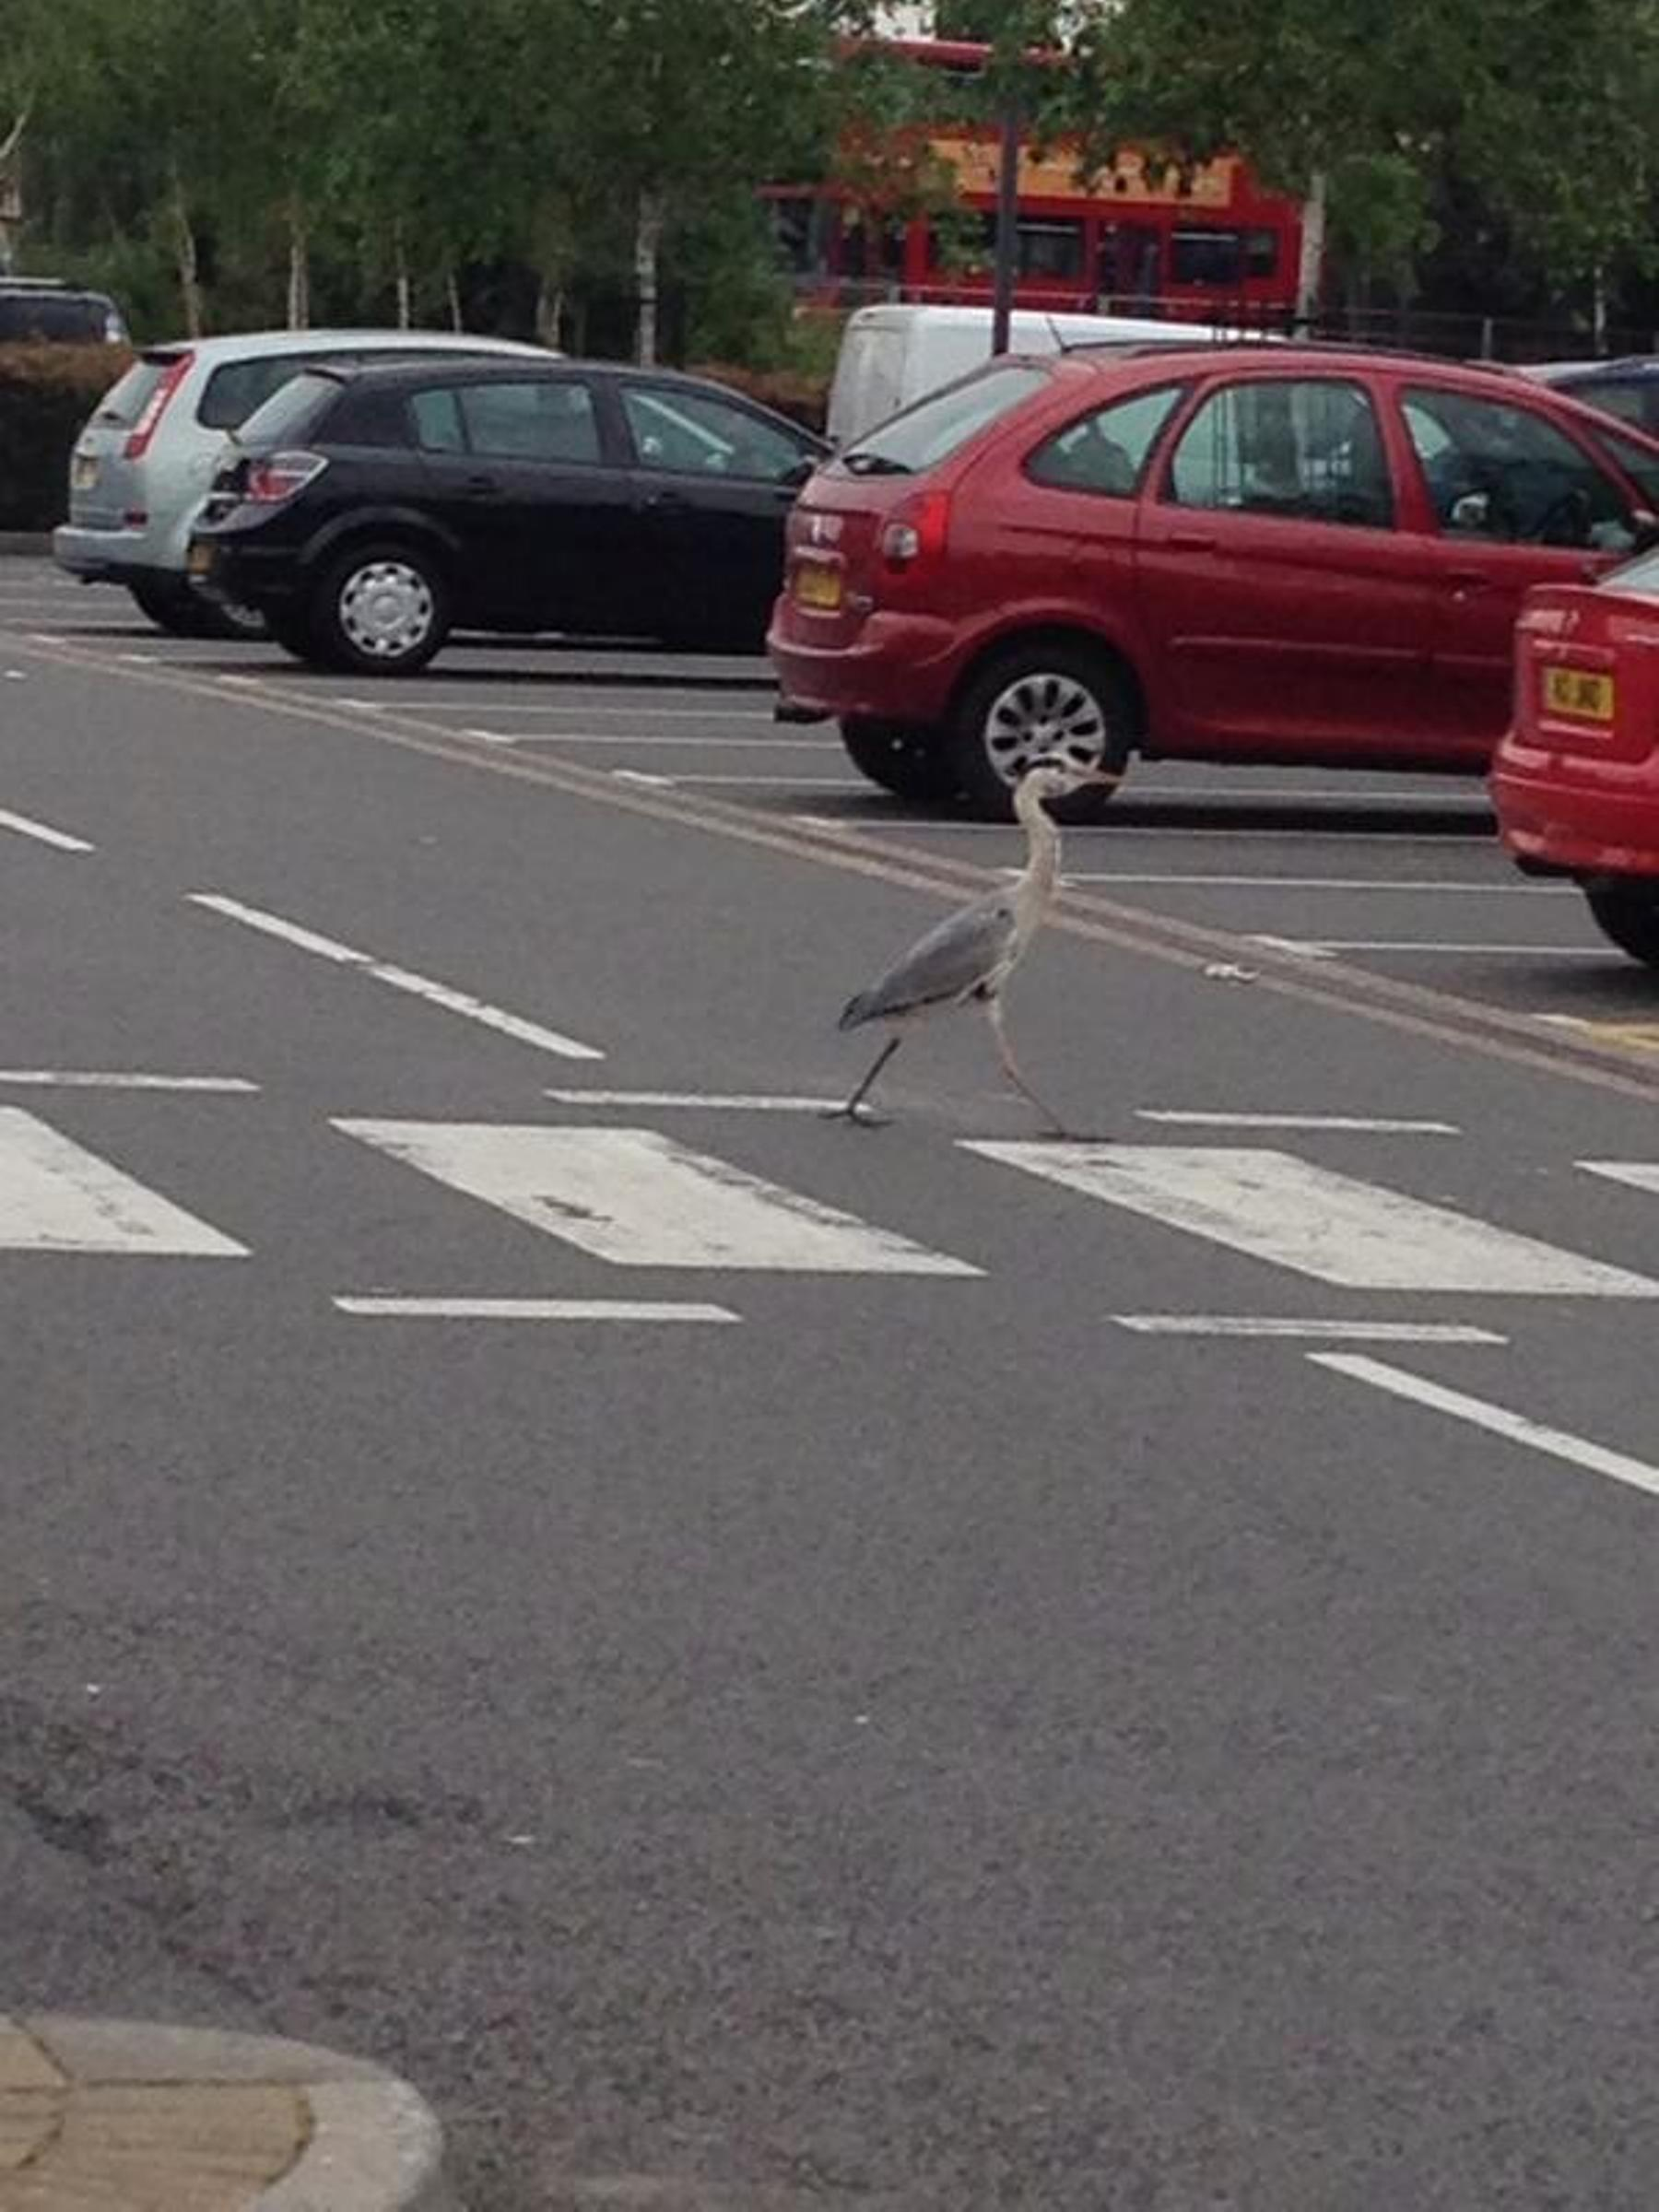 Large bird spotted using zebra crossing in Thamesmead